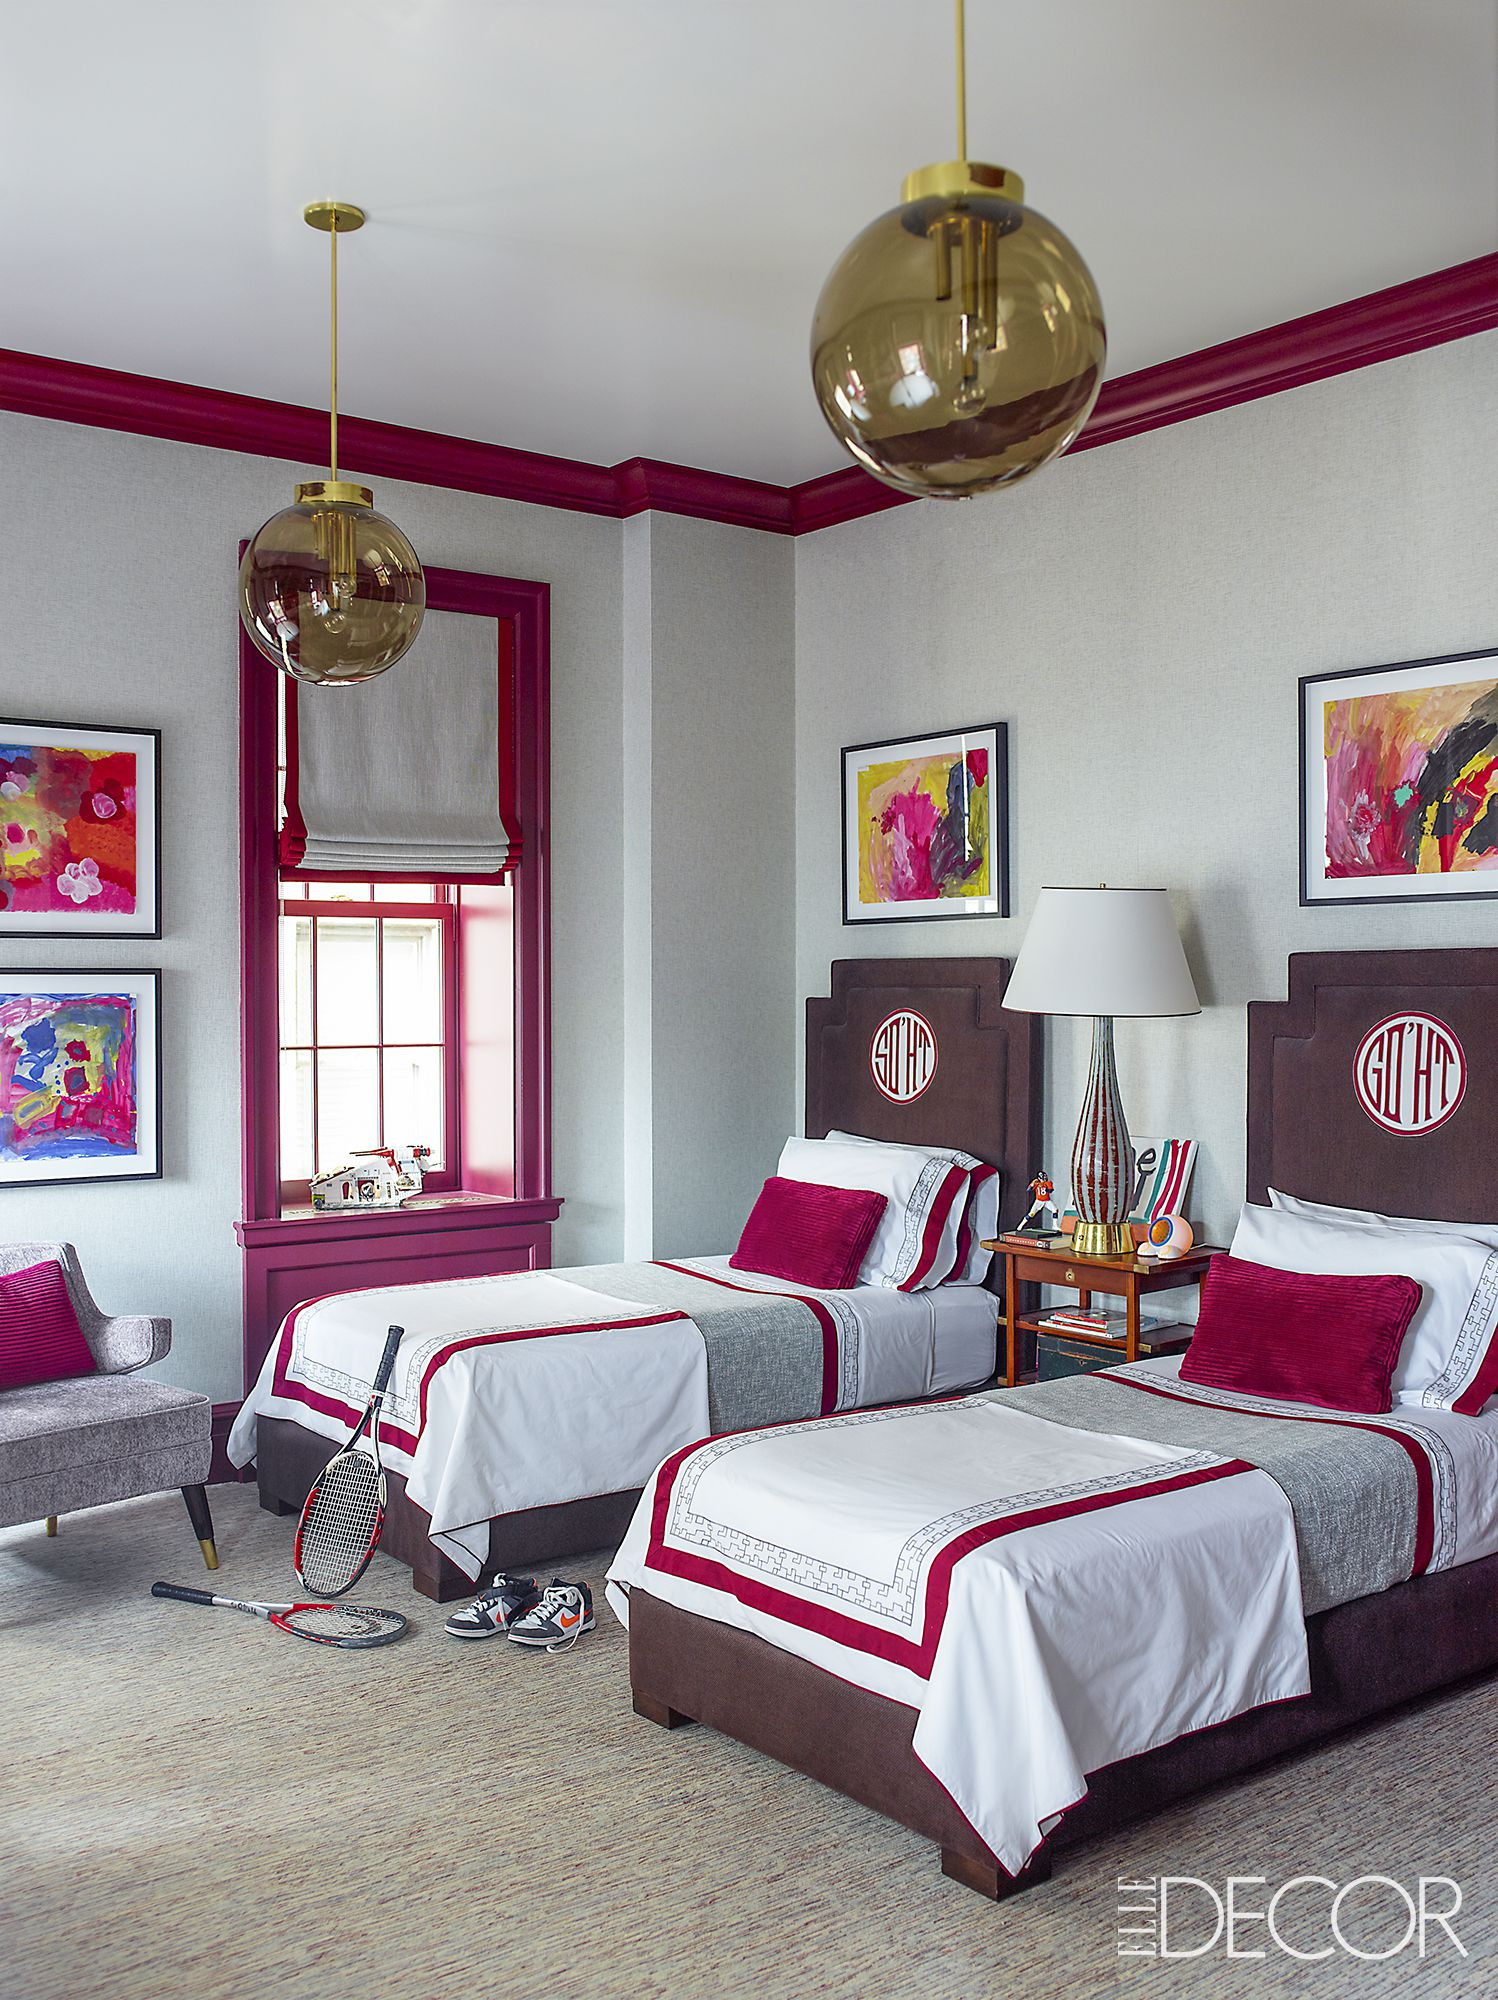 Best ideas about Pictures For Kids Room . Save or Pin Kids Bedroom Ideas Rekindling of Patriotism by Camouflage Now.